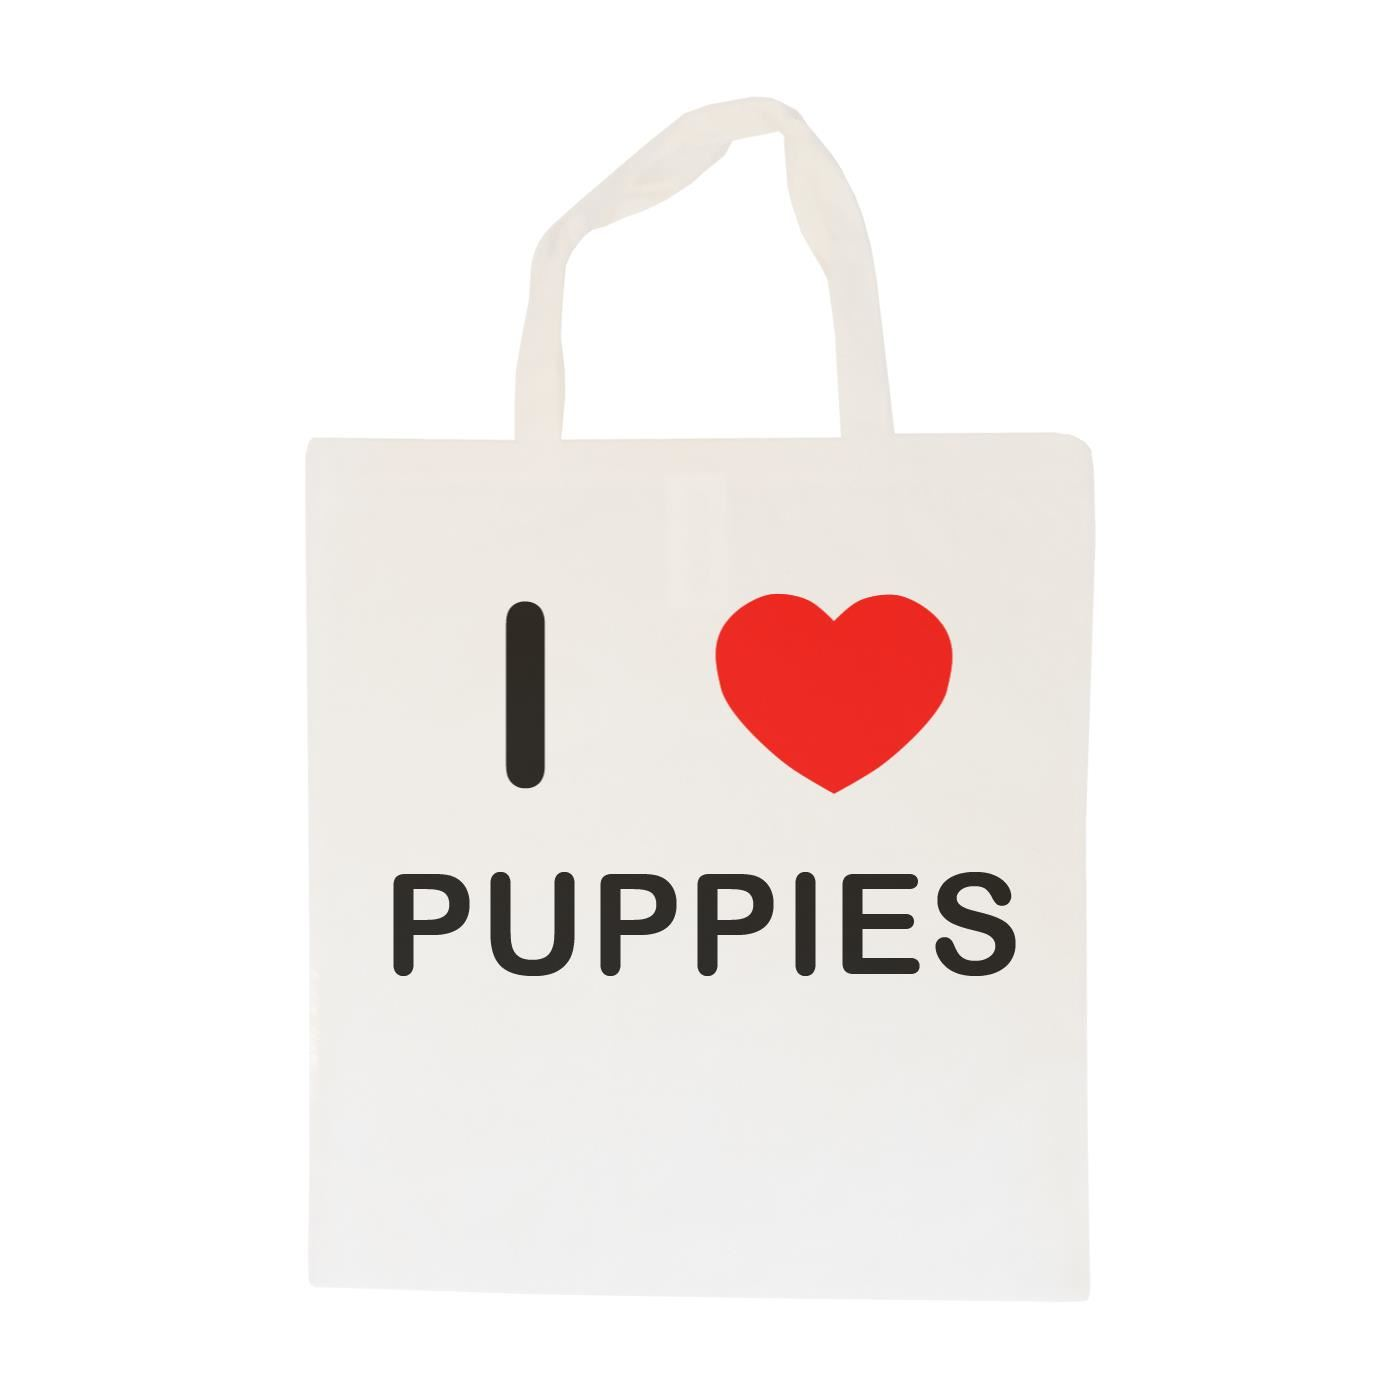 I Love Puppies - Cotton Bag | Size choice Tote, Shopper or Sling